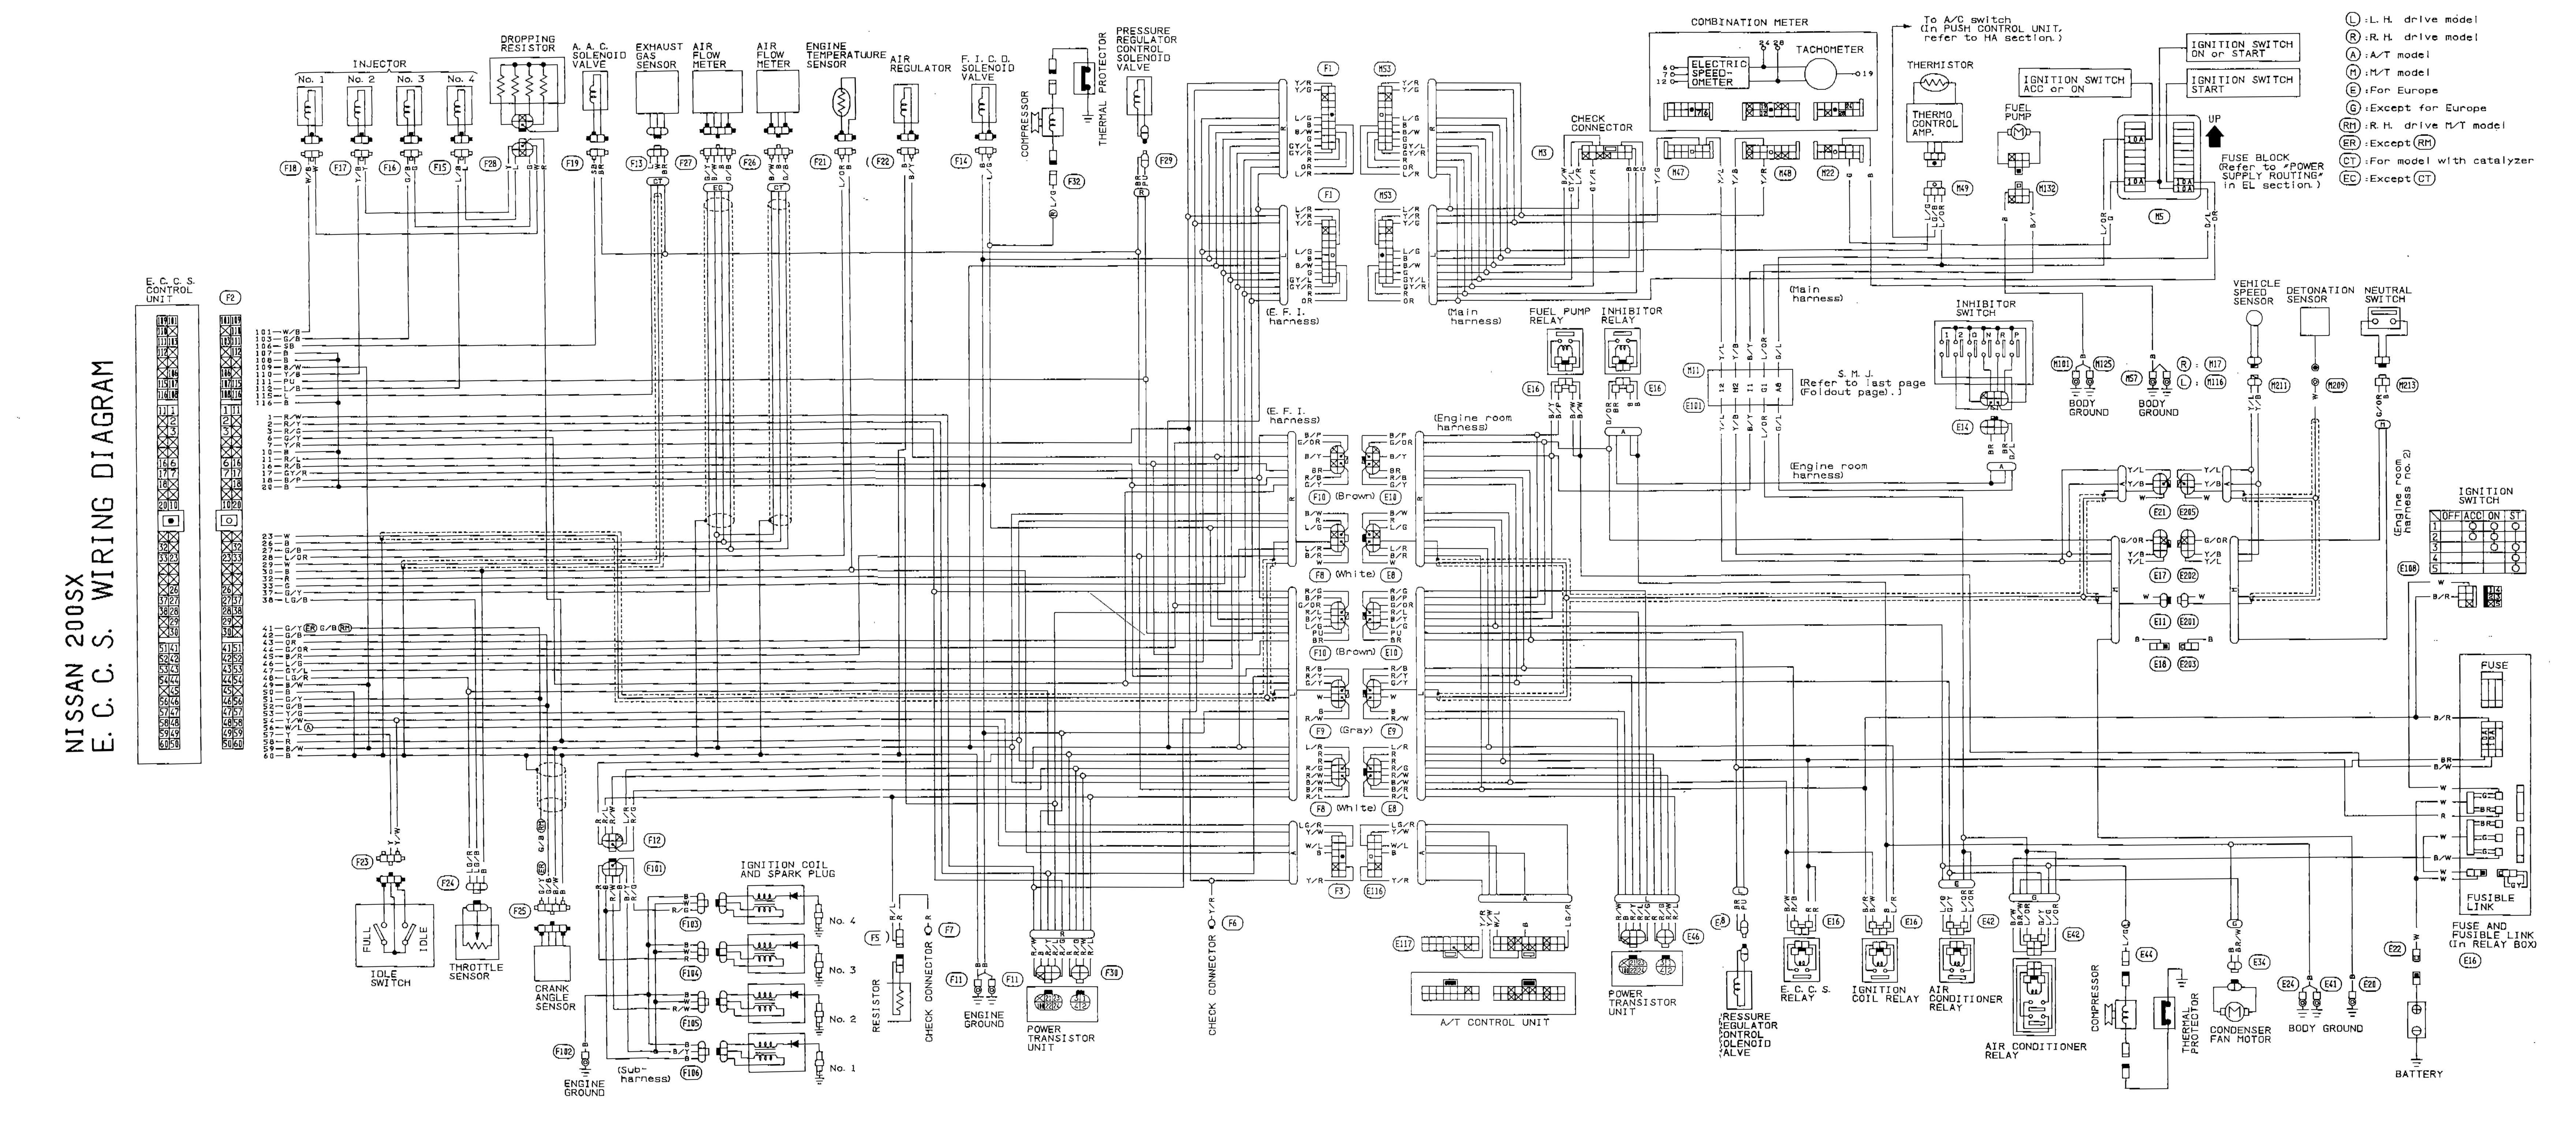 S13 Wiring Diagram Wiring Diagram Schematics Electrical Diagram 240sx Fuse  Diagram